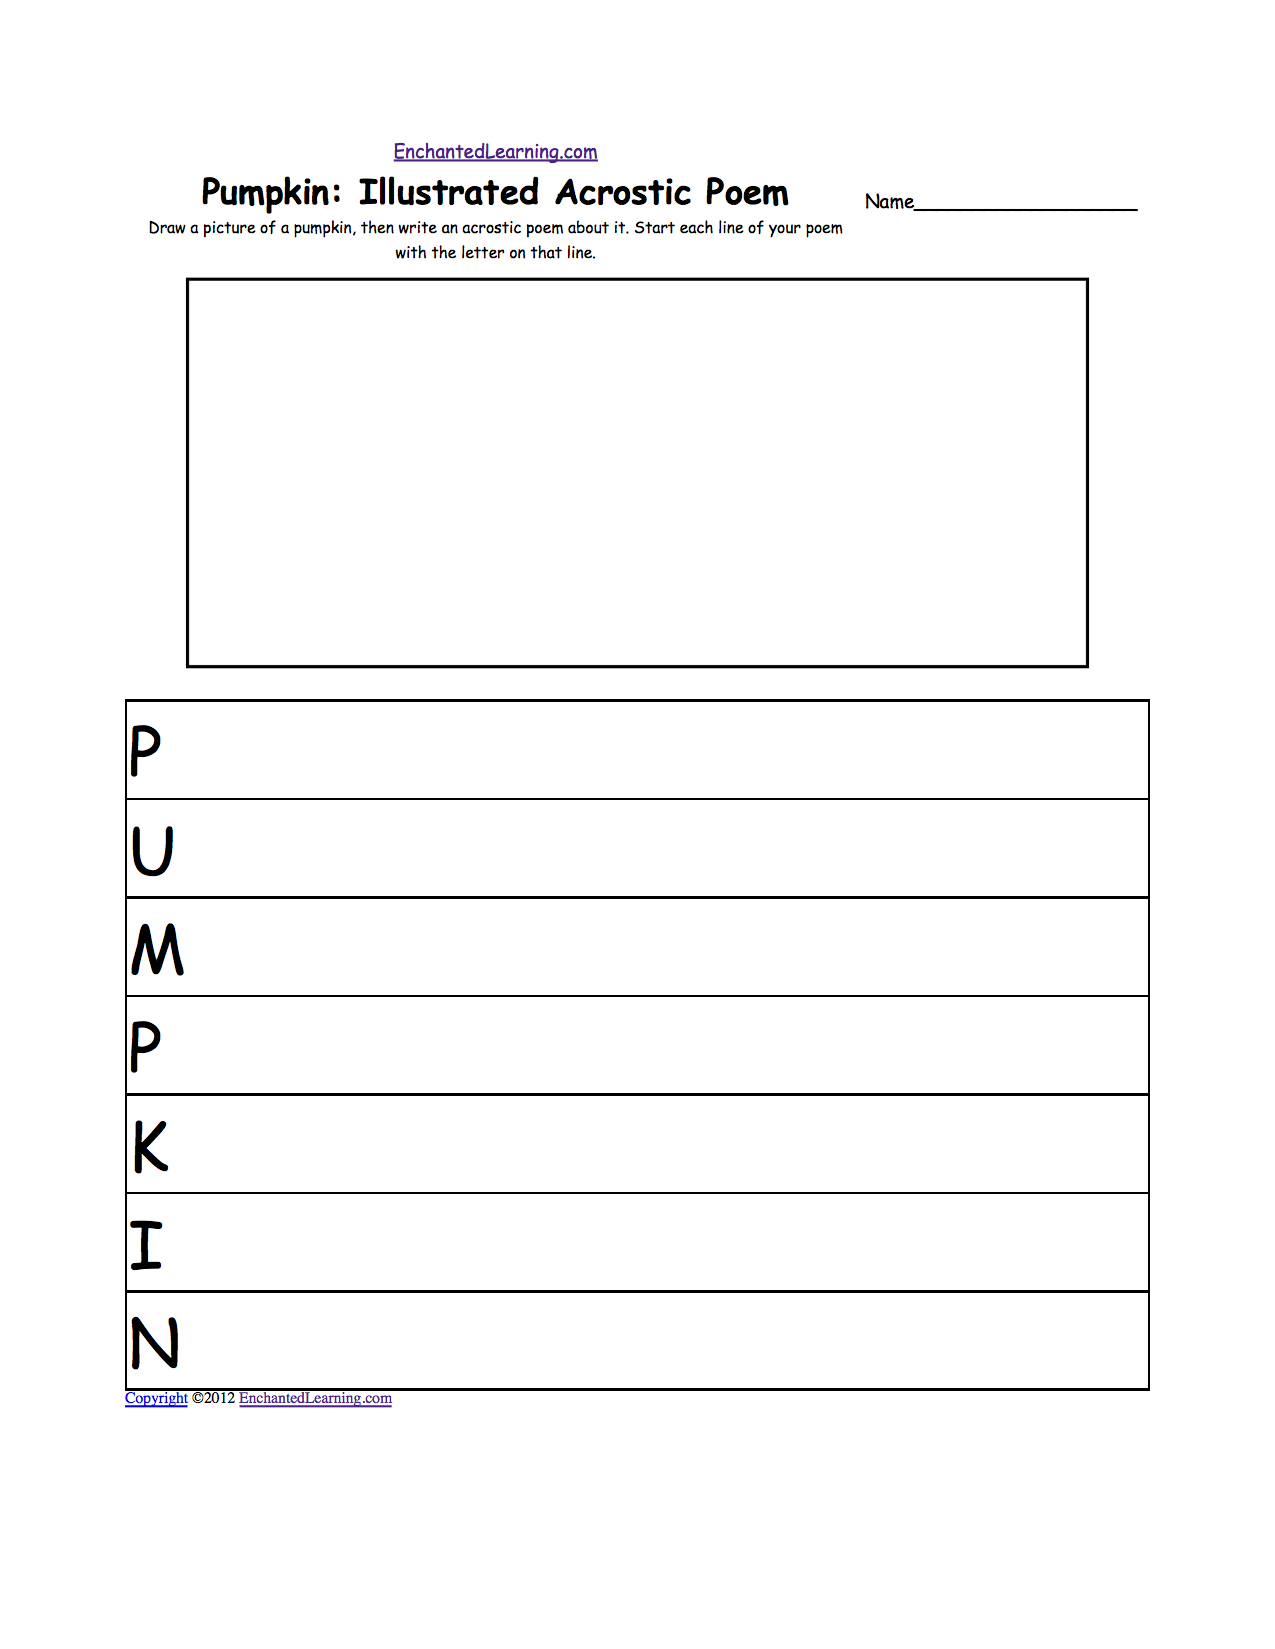 Printables Poem Worksheets illustrated acrostic poem worksheets worksheet printout enchantedlearning com